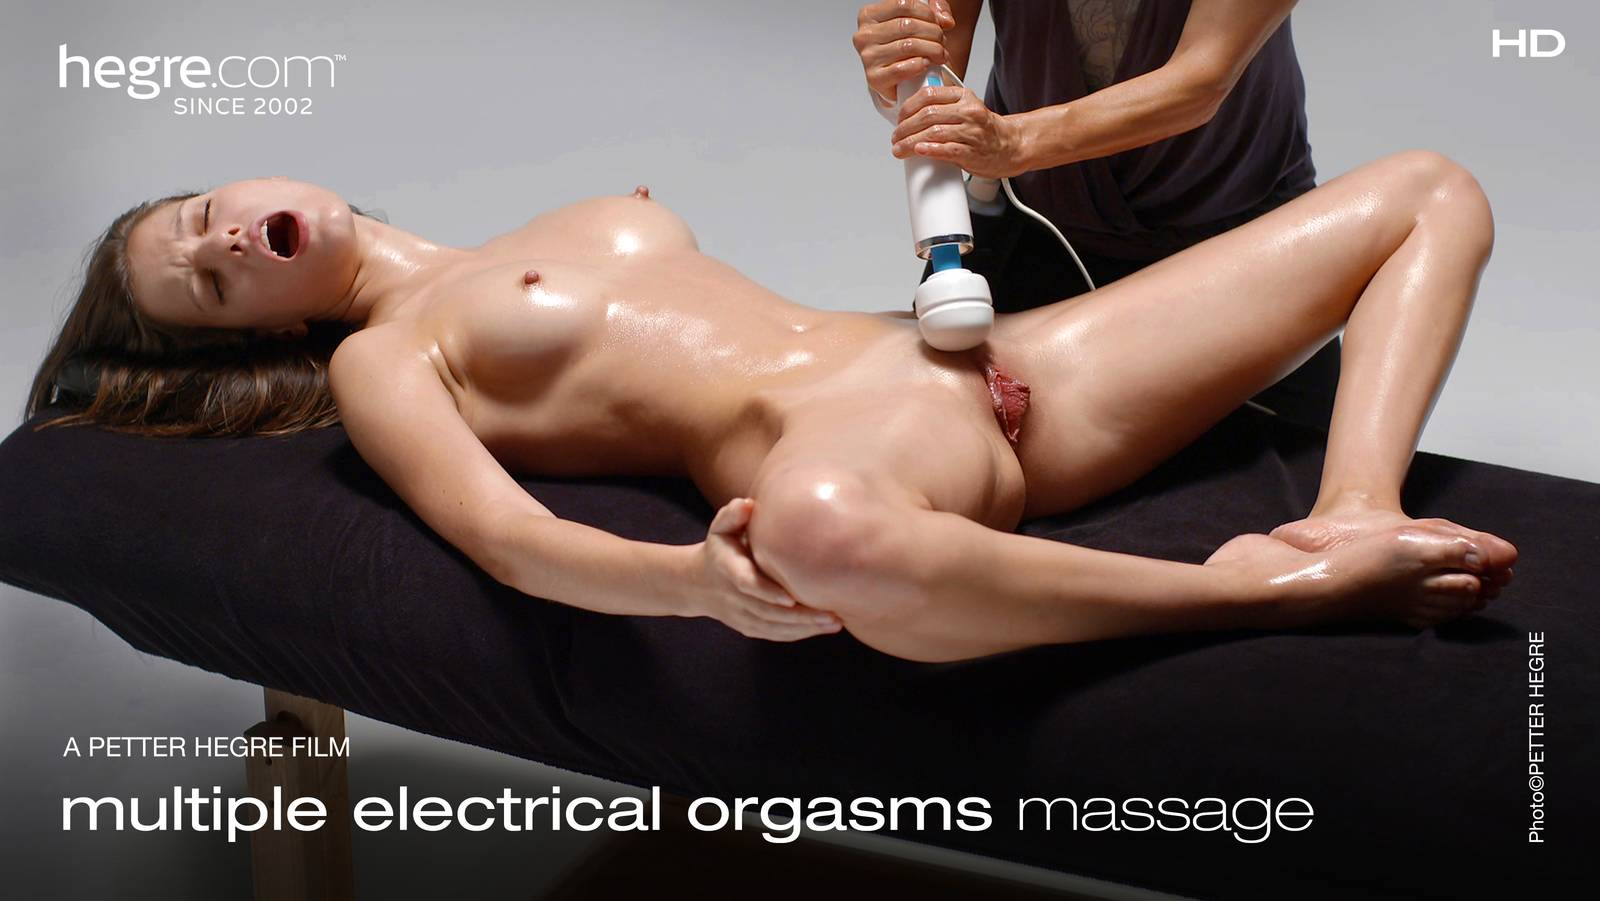 Massage orgasms